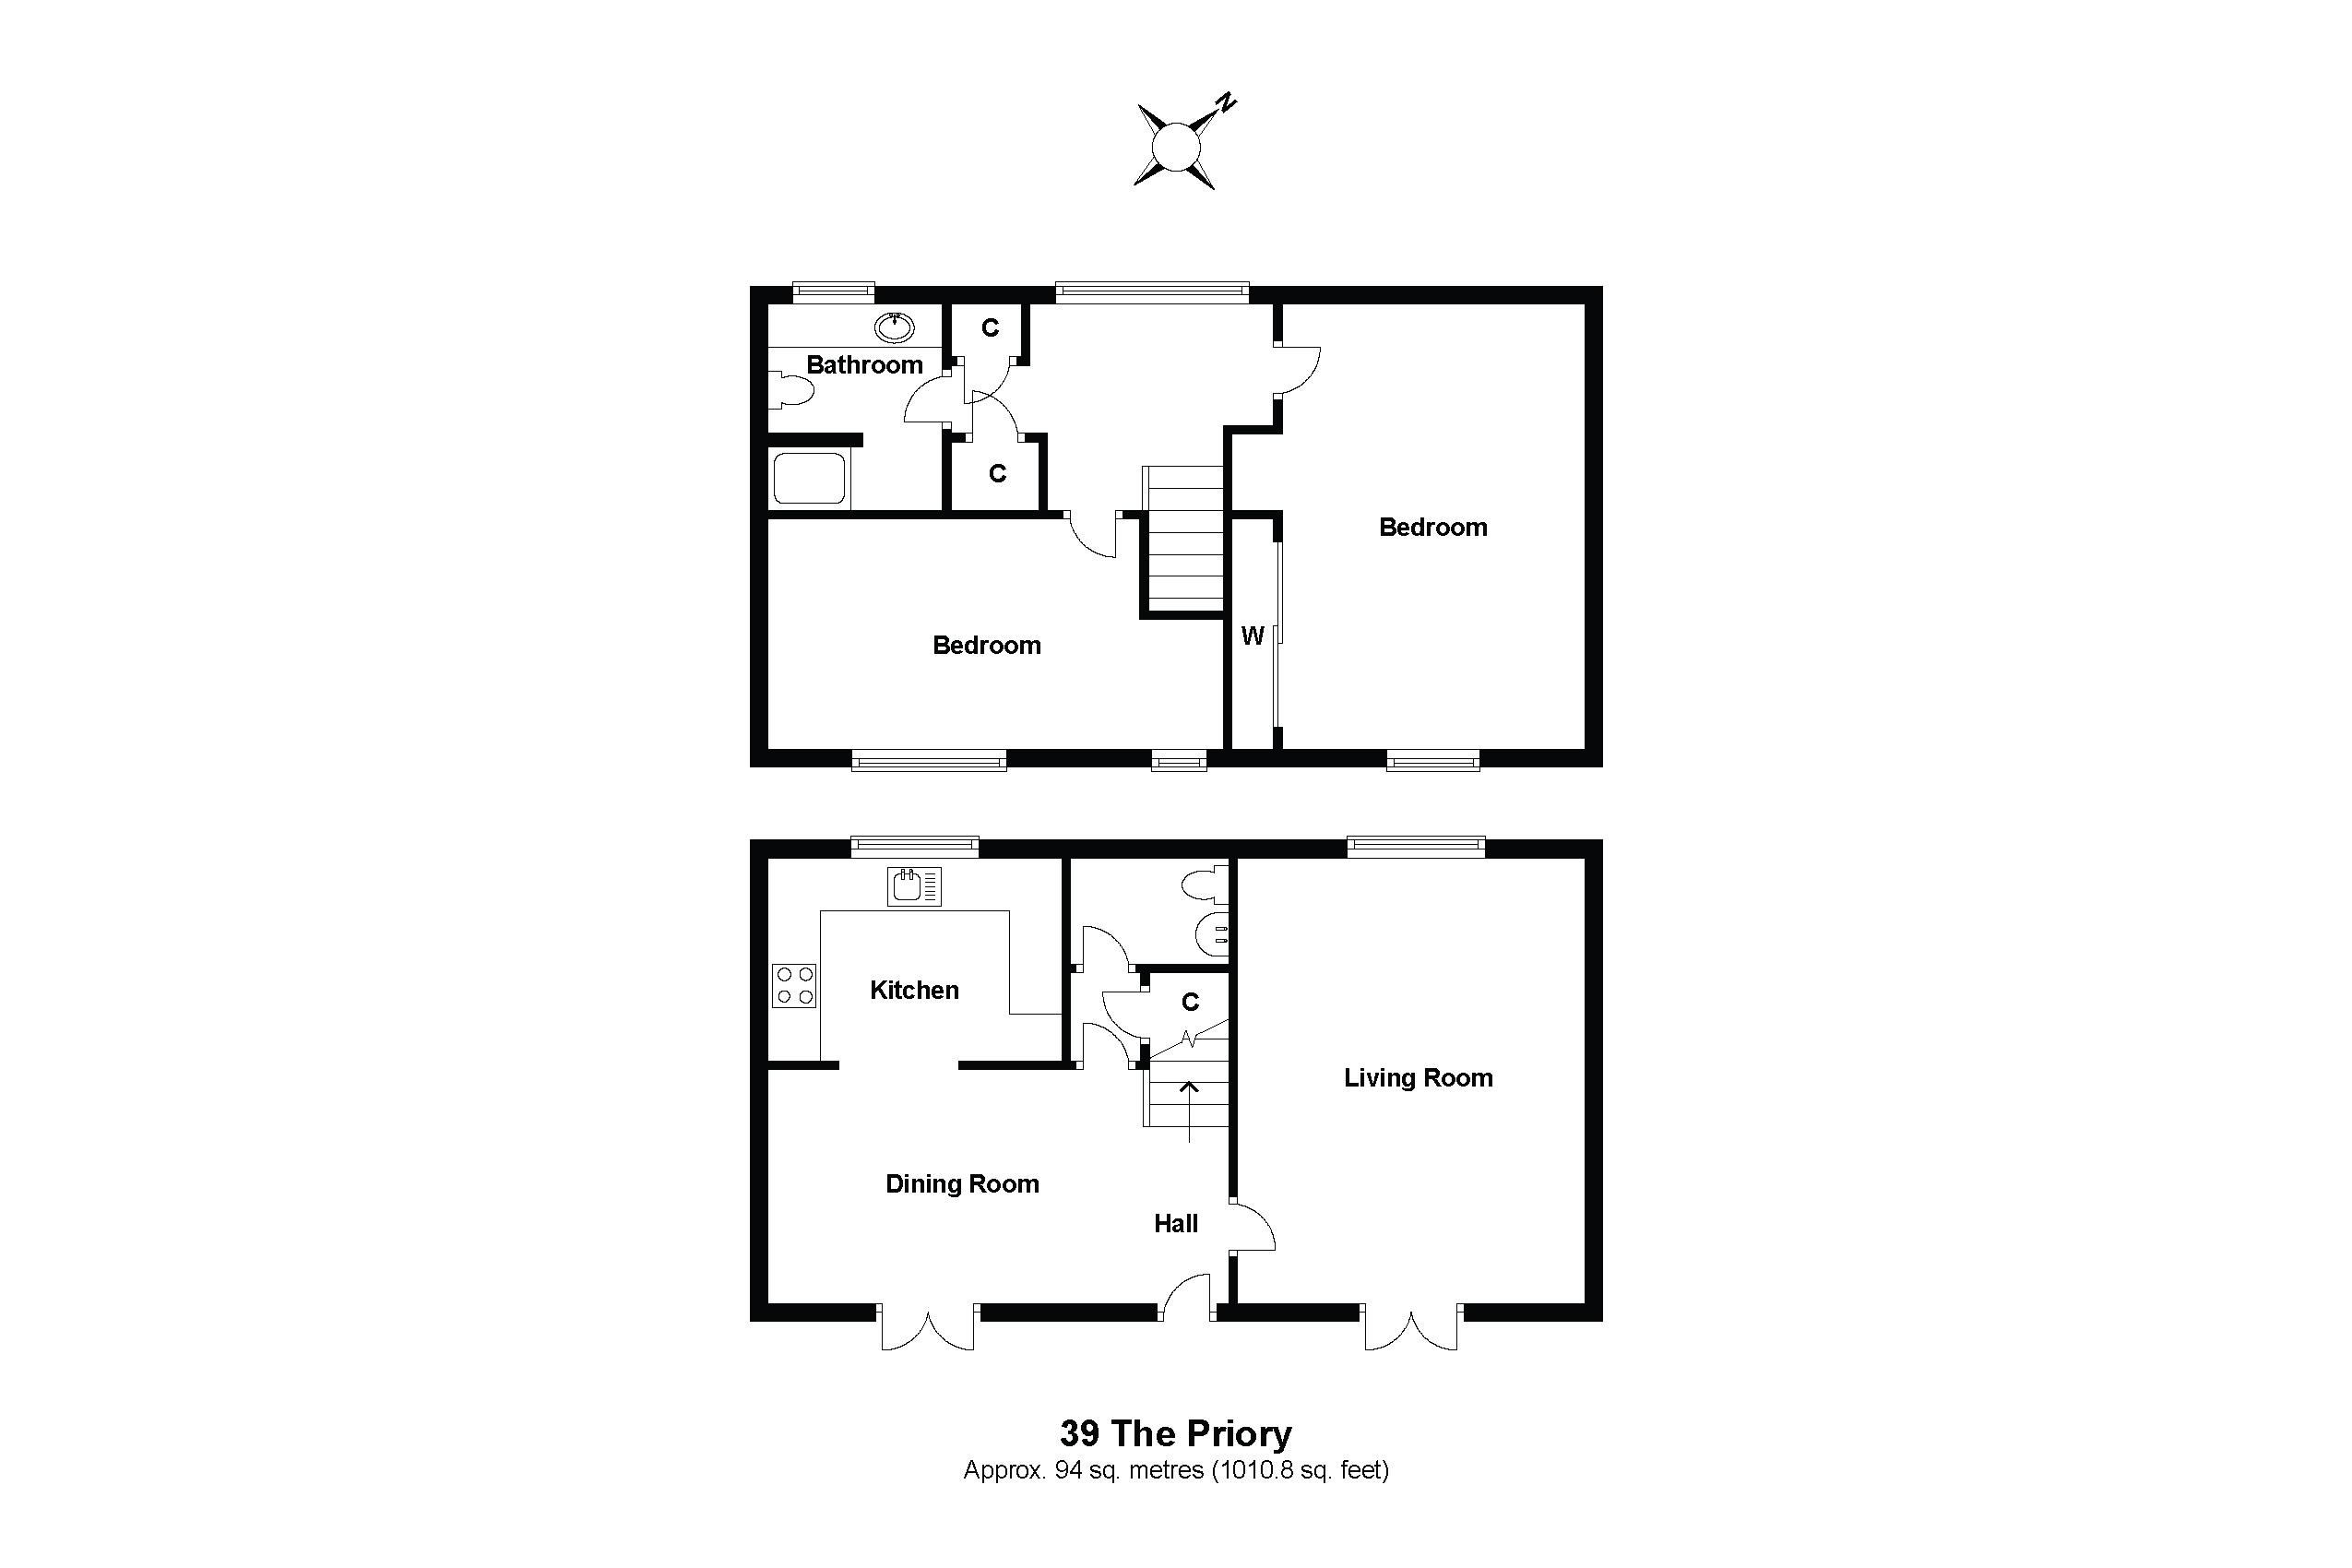 39 The Priory Floorplan